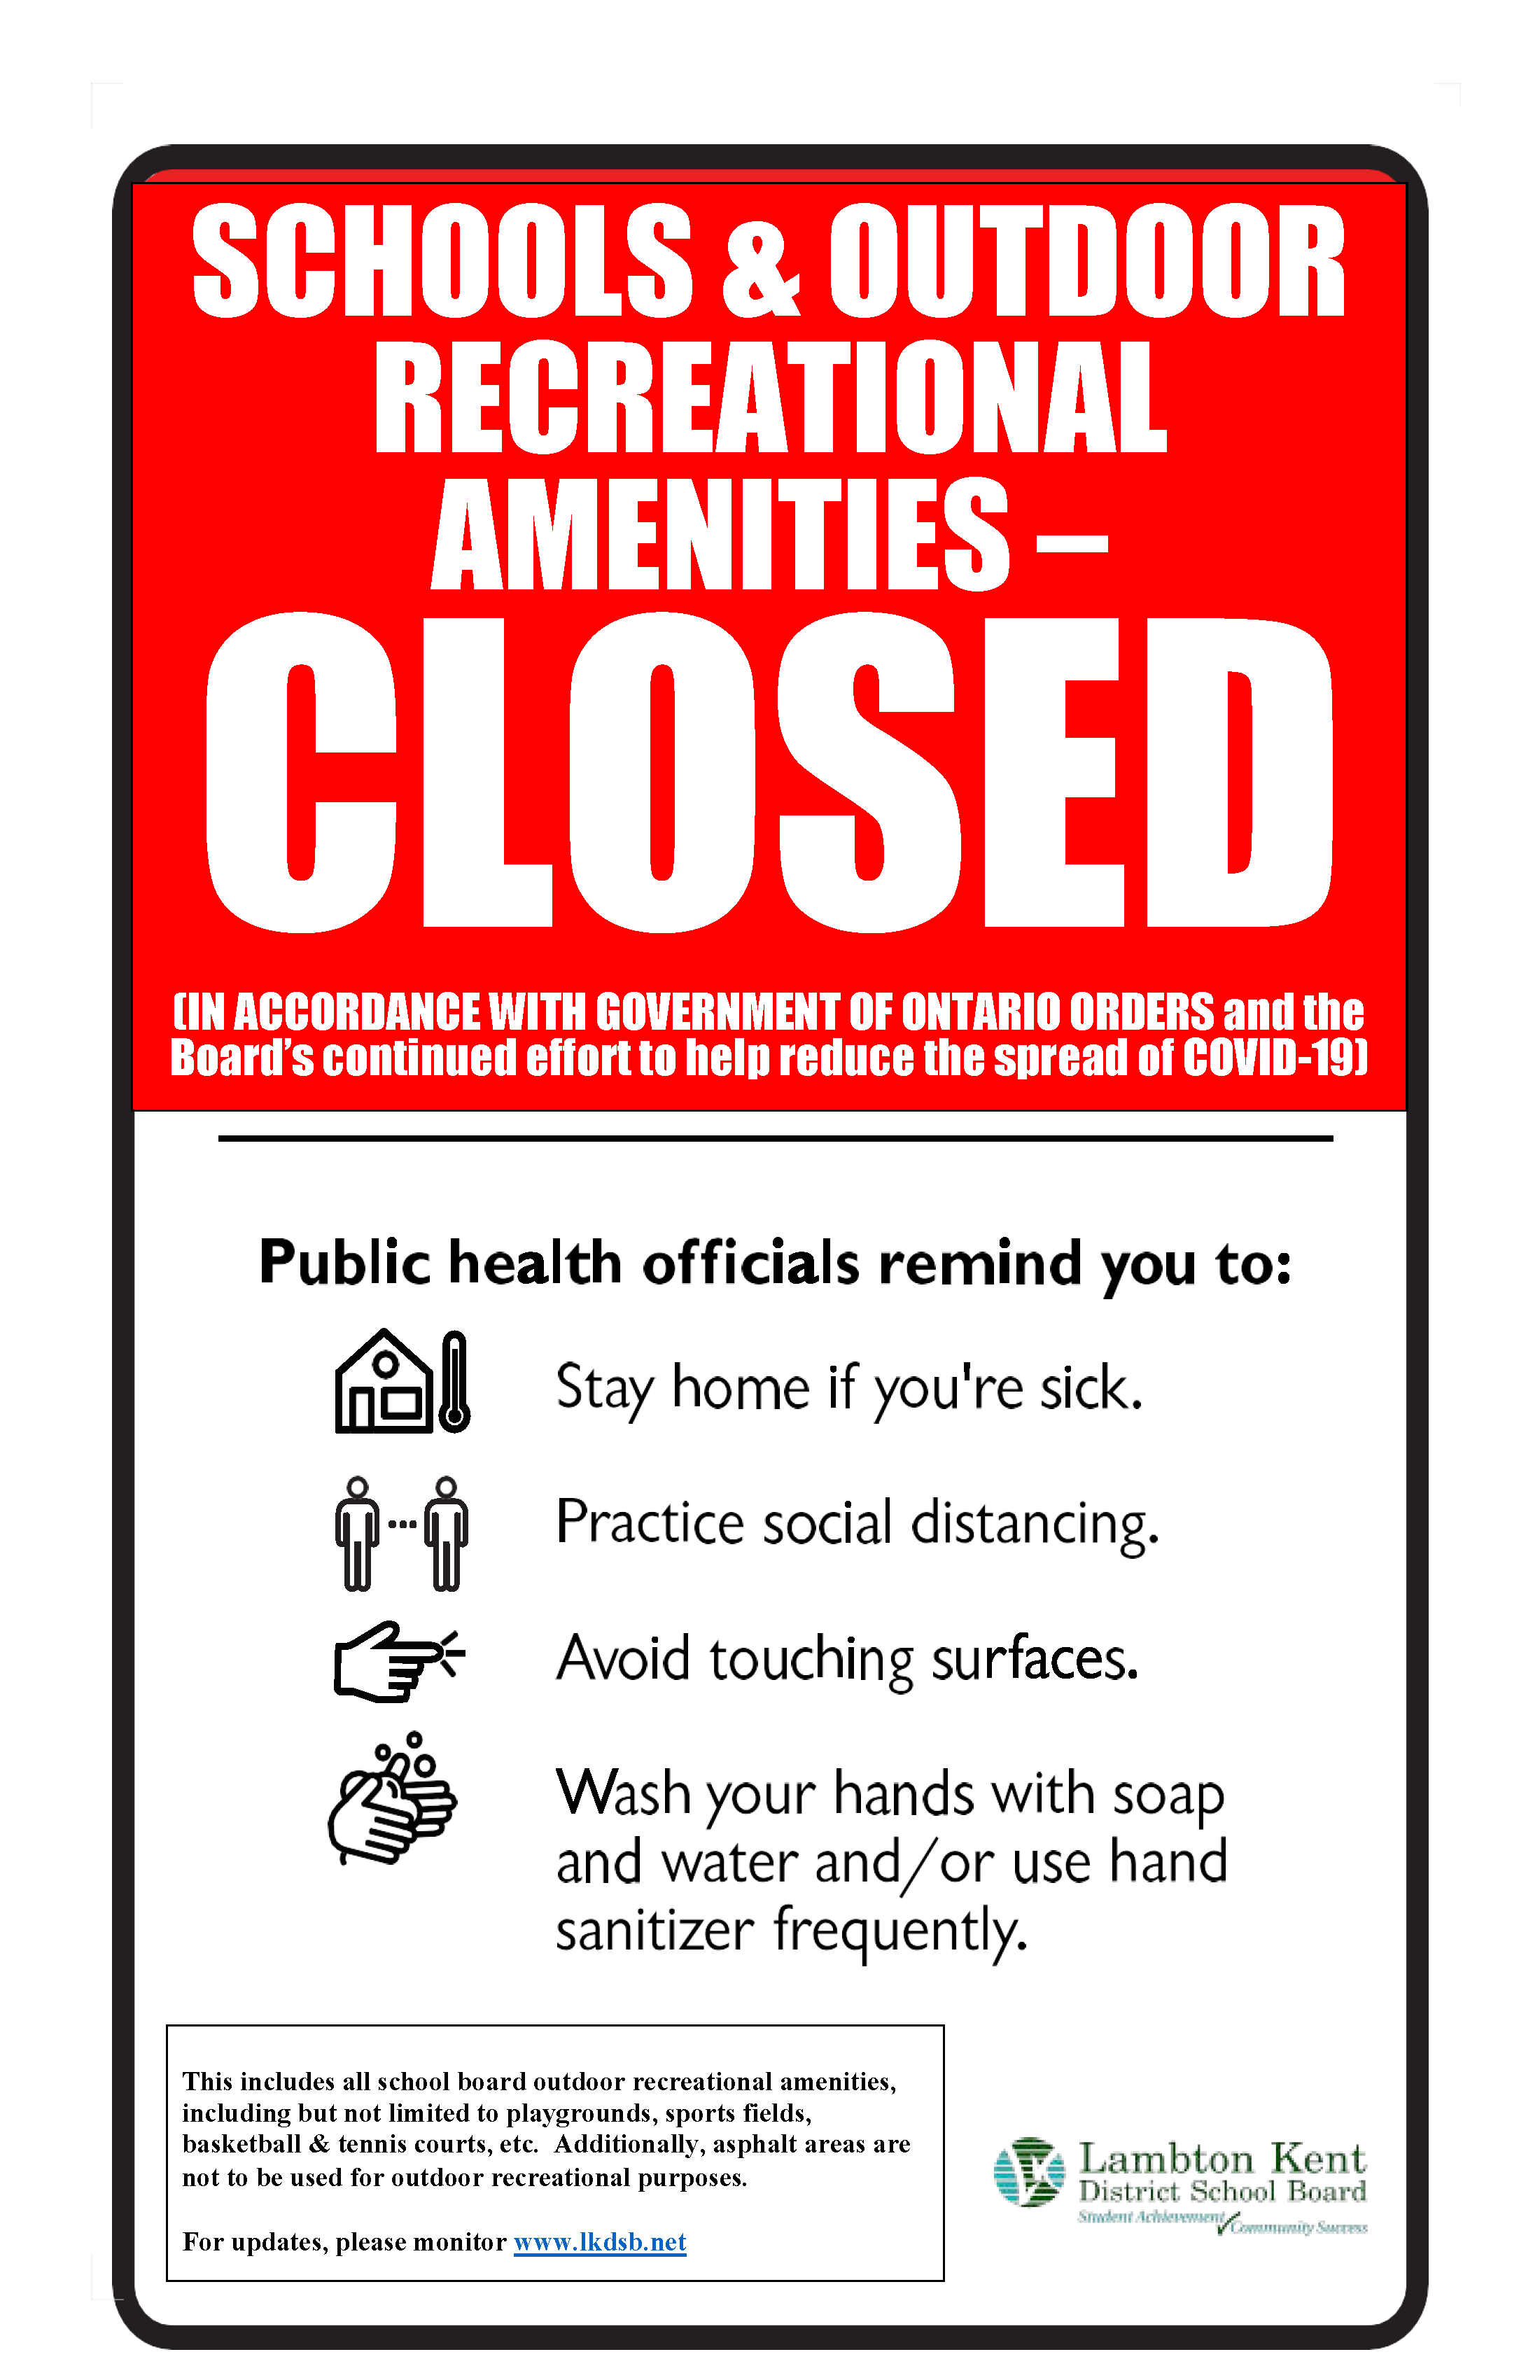 Schools-Outdoor Recreational Amenities_Closed_LKDSB.png